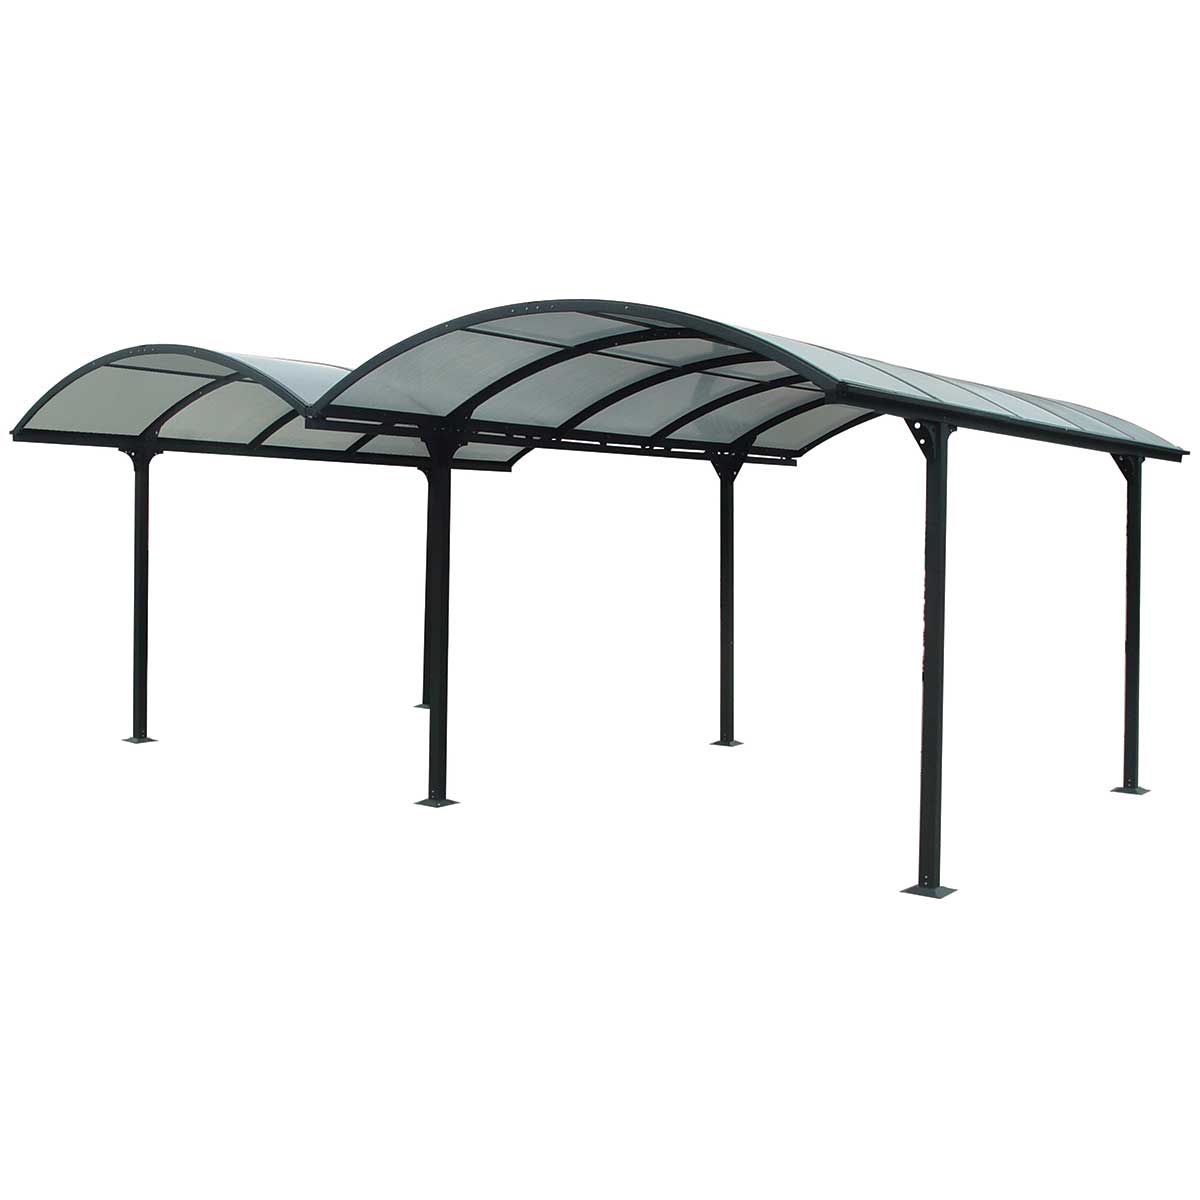 Carport bois 6x4 for Prix piscine beton 6x4